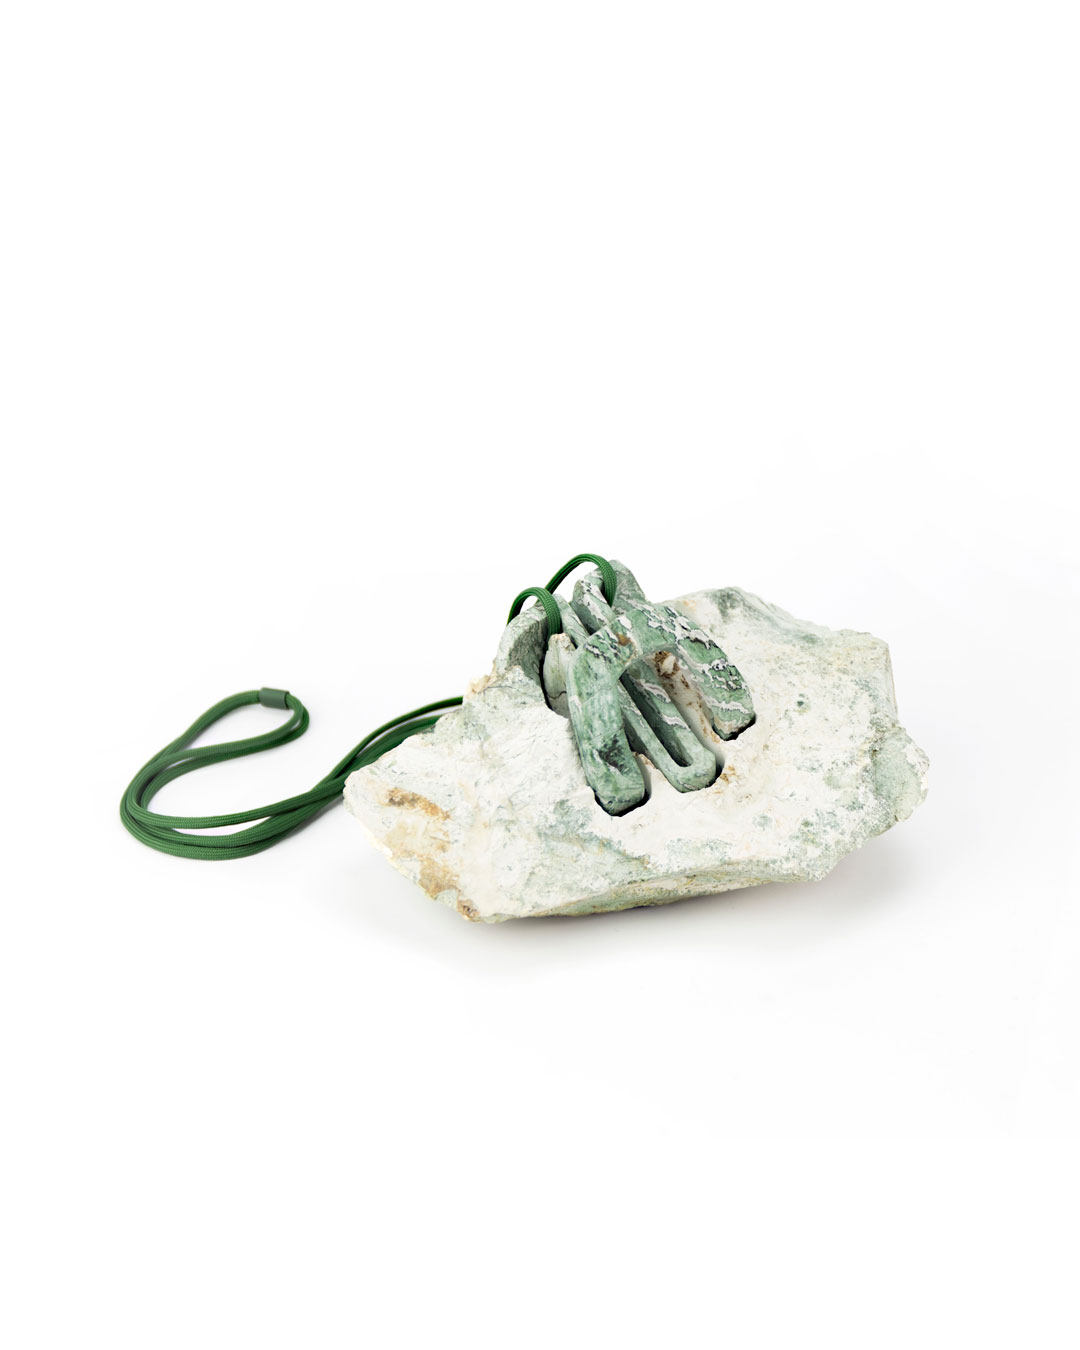 Edu Tarín, G0C2, 2018, pendant and object; turquoise agate, 92 x 80 x 50 mm, €5090 (image 2/2)